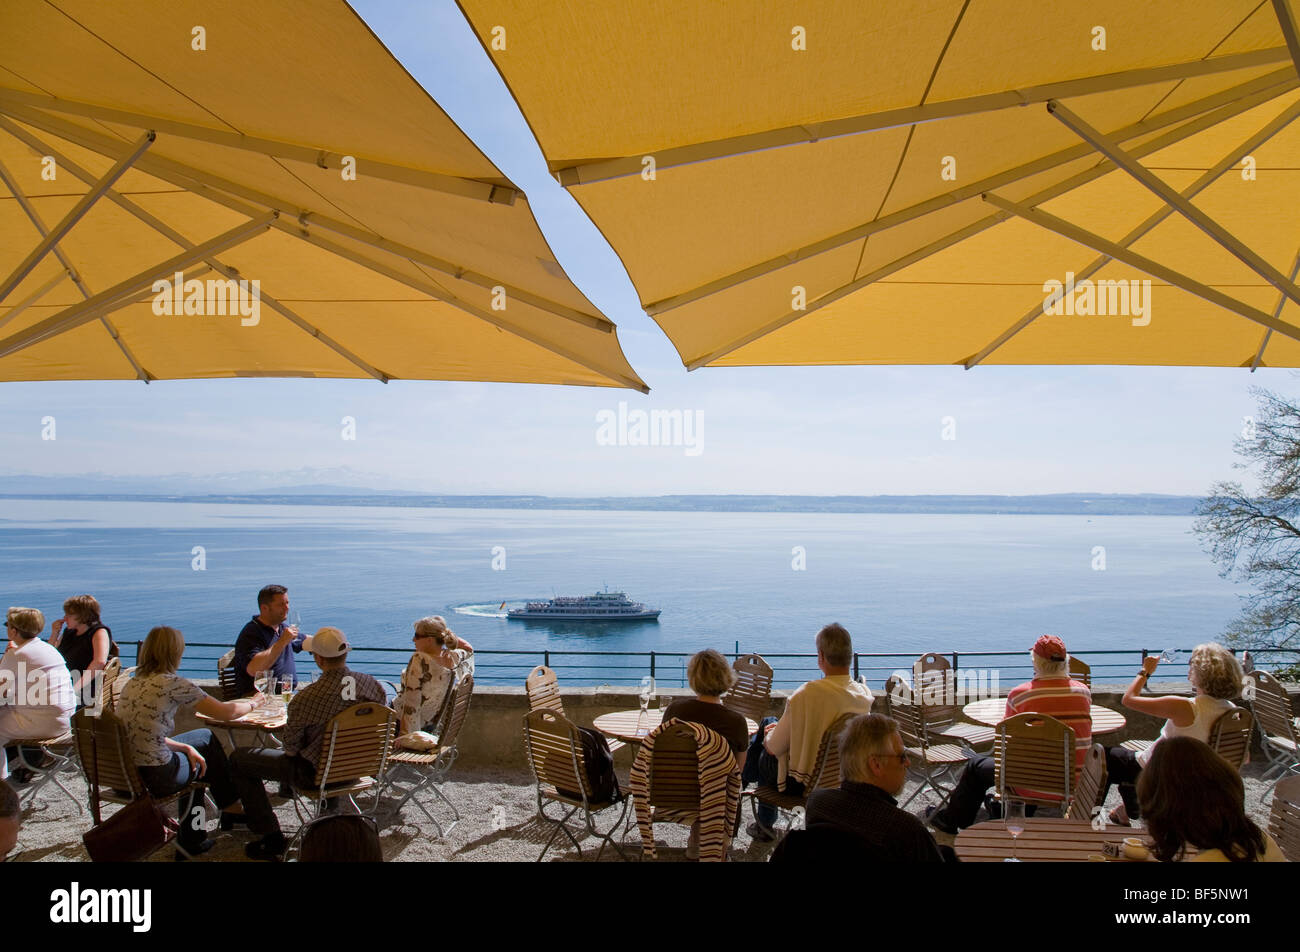 Meersburg Panorama Lake Constance Stock Photos & Meersburg Panorama ...